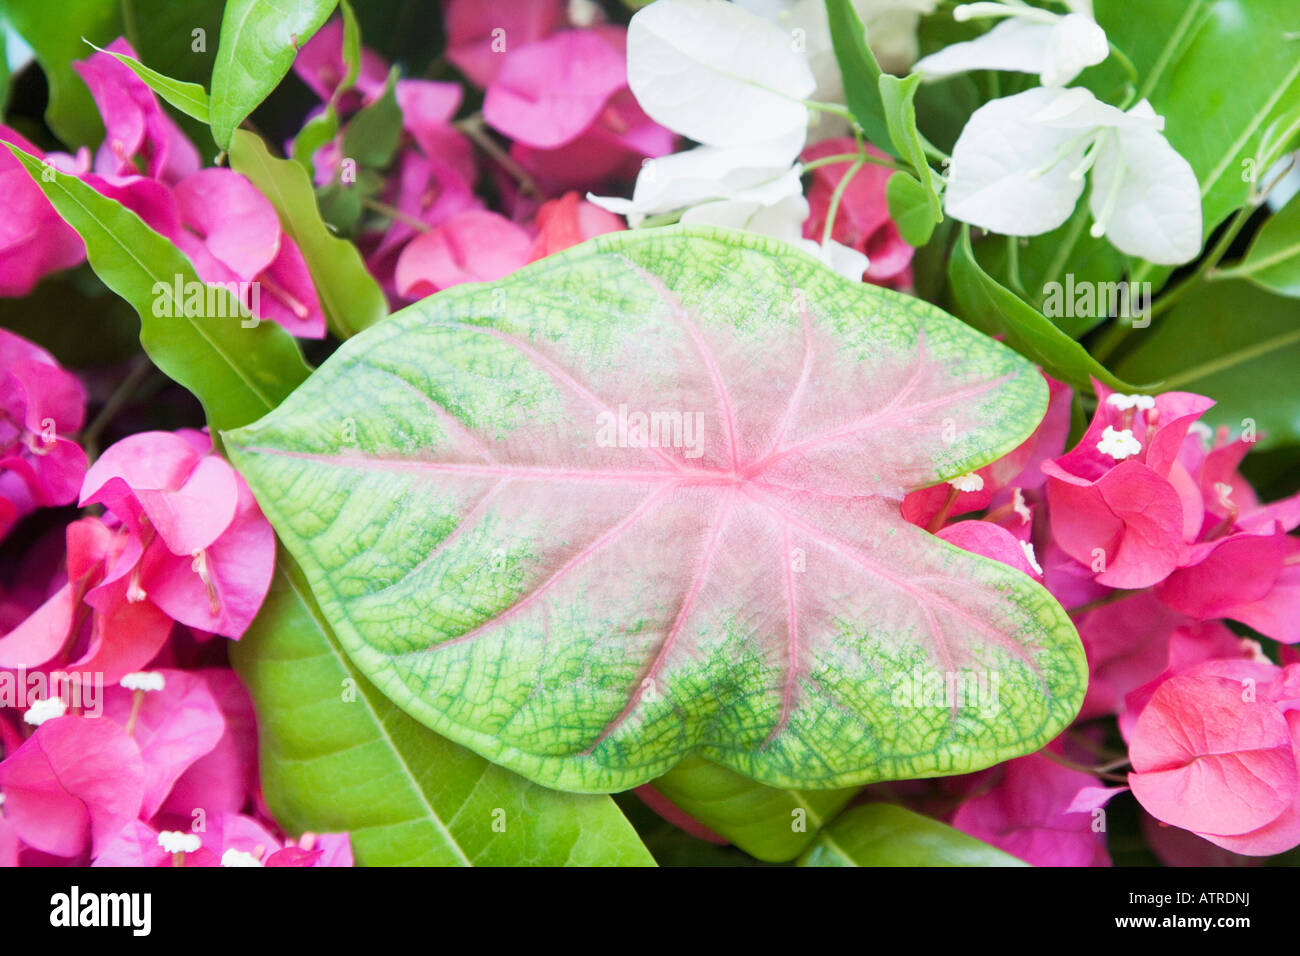 Close-up of leaves and flowers Stock Photo